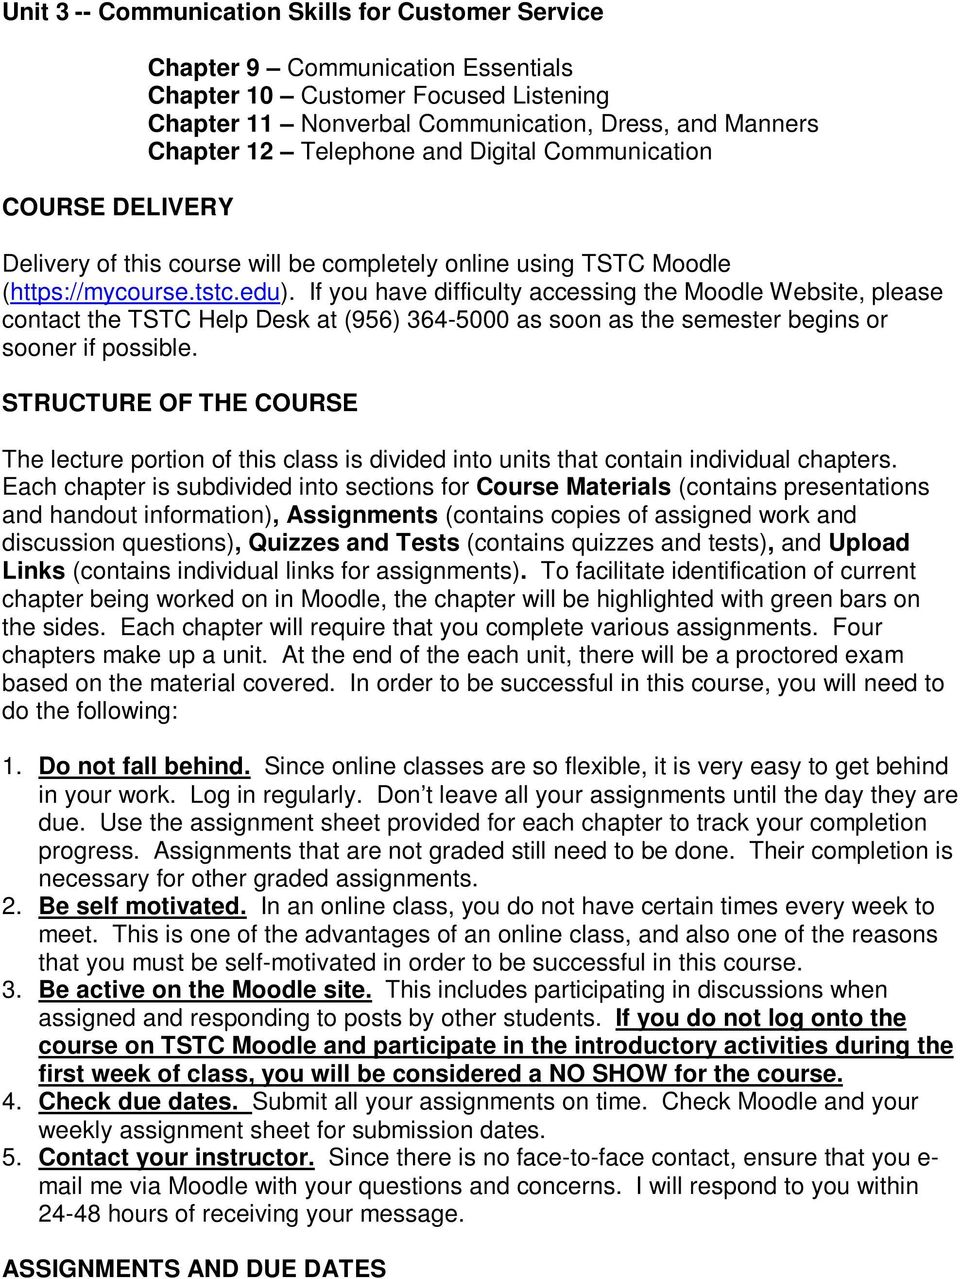 If you have difficulty accessing the Moodle Website, please contact the TSTC Help Desk at (956) 364-5000 as soon as the semester begins or sooner if possible.